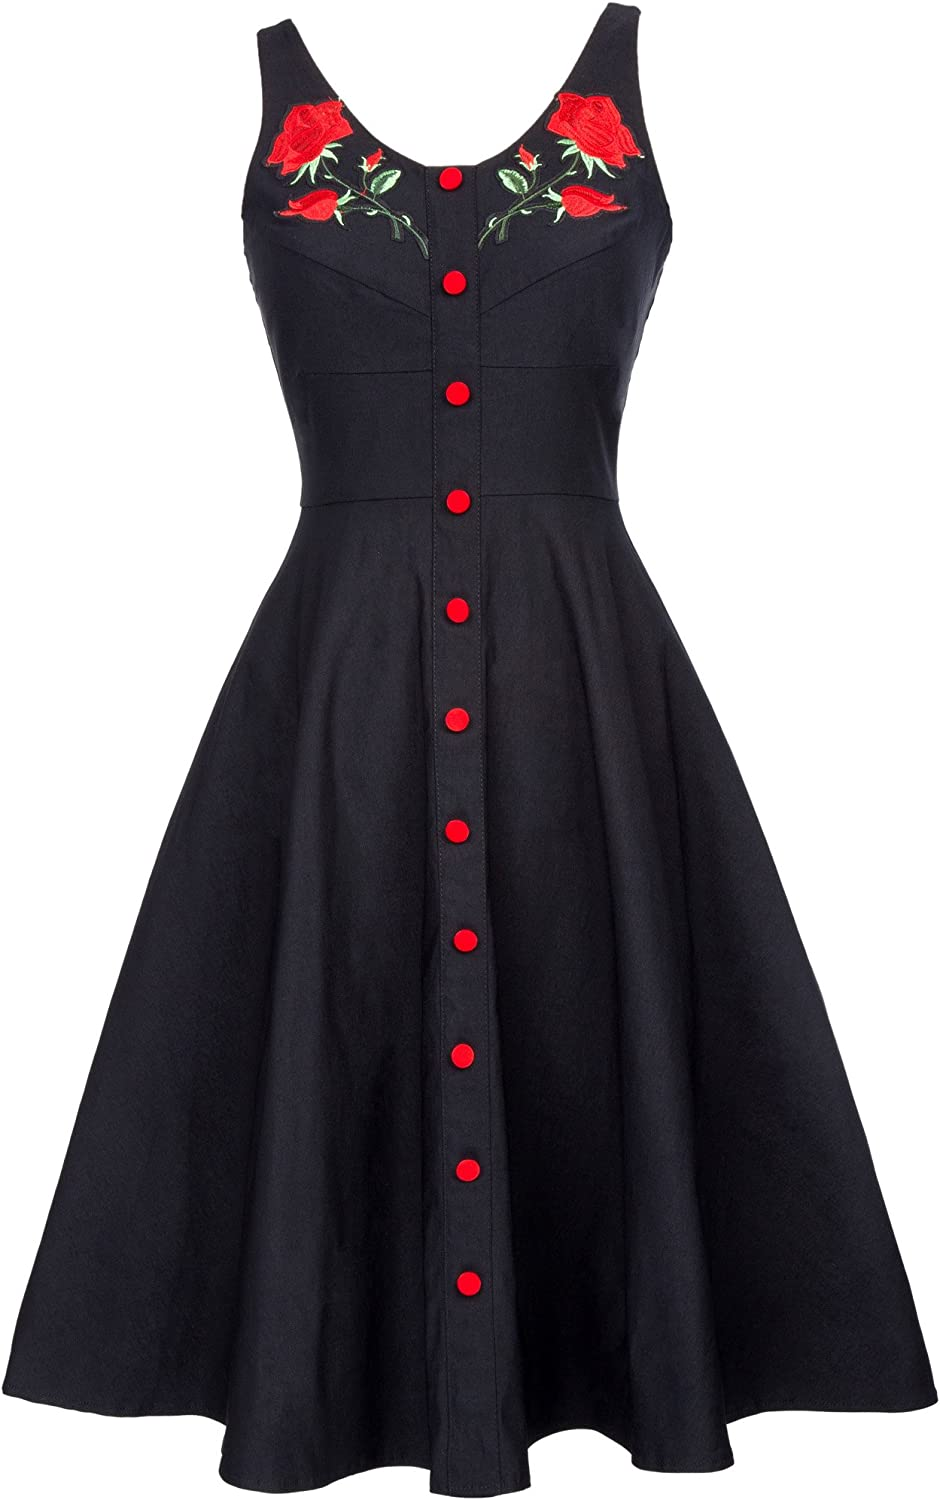 Belle Poque Women's Vintage Dress Sleeveless Flower Embroidery A-Line Swing Party Dress